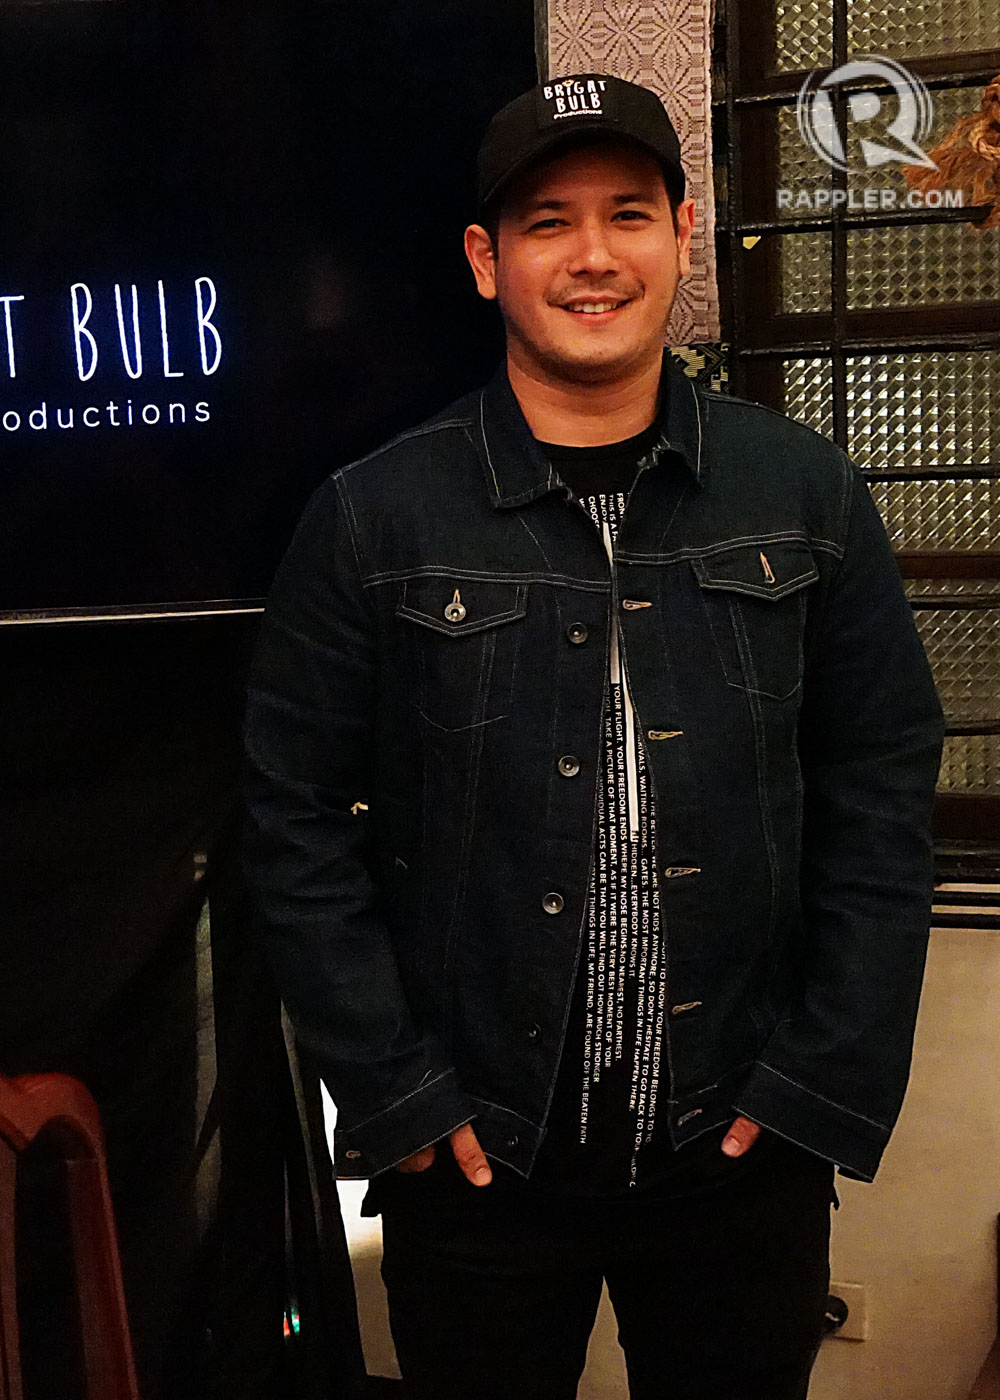 DIRECTOR. John Prats is now on the other side of the cameras, serving as a director for Bright Bulb Productions.